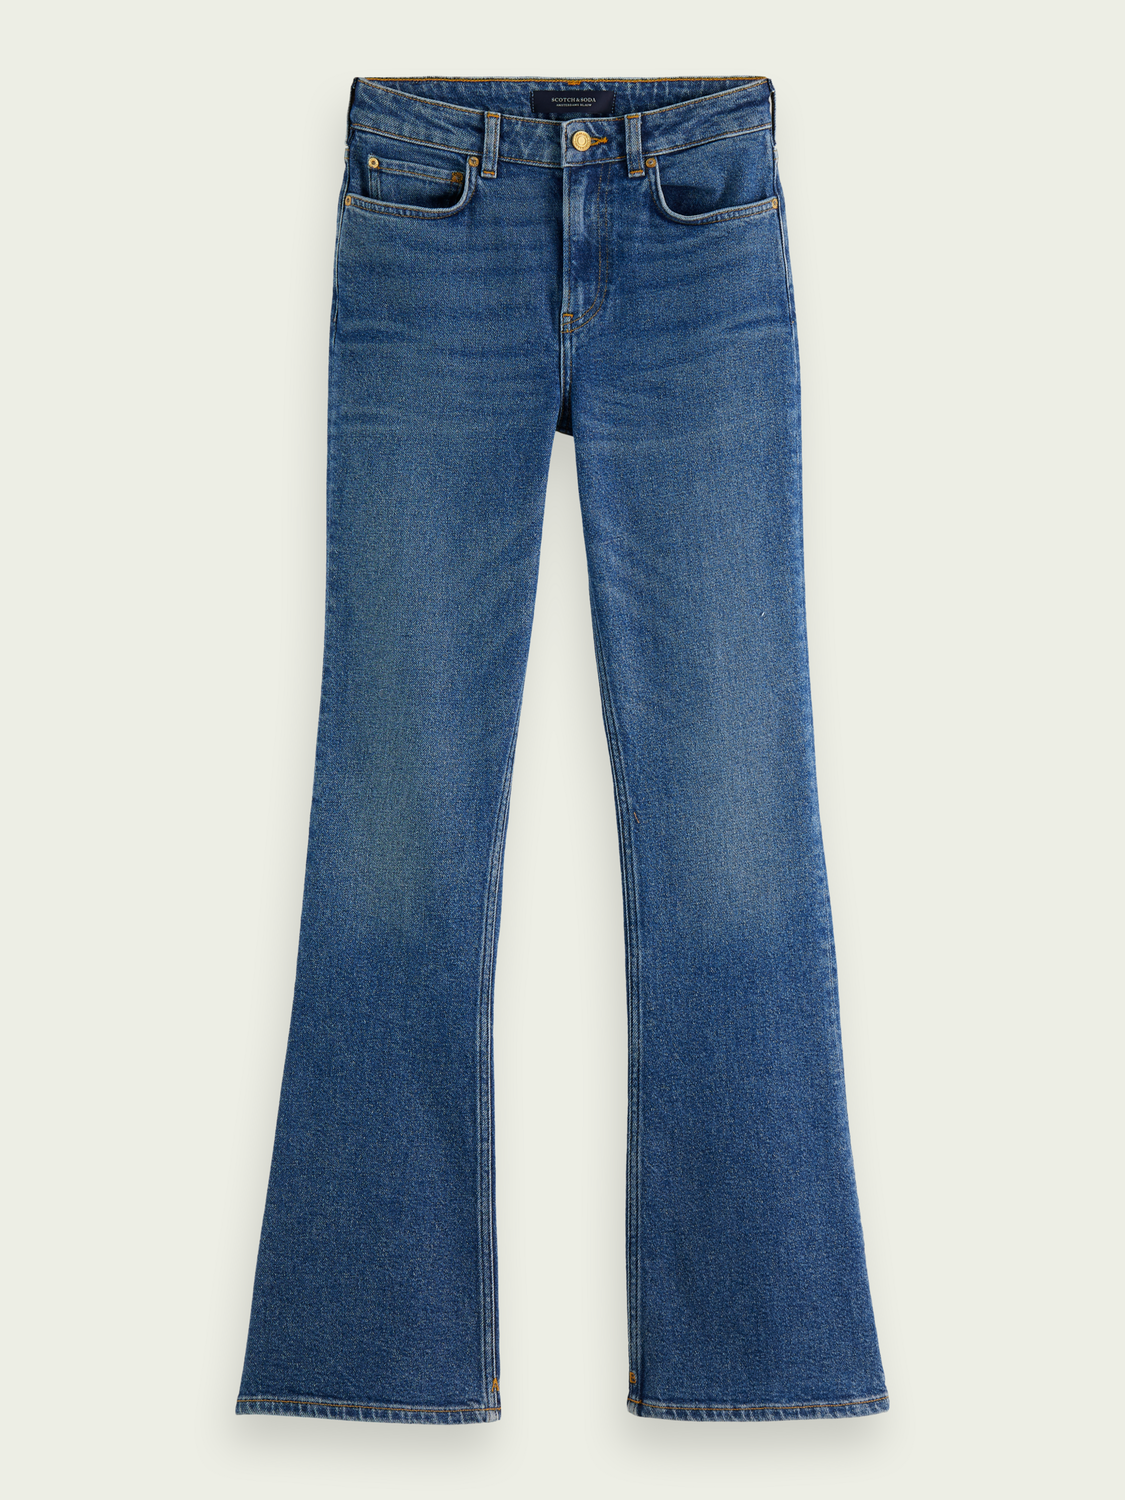 Women The Charm flared jeans - Sea Washed